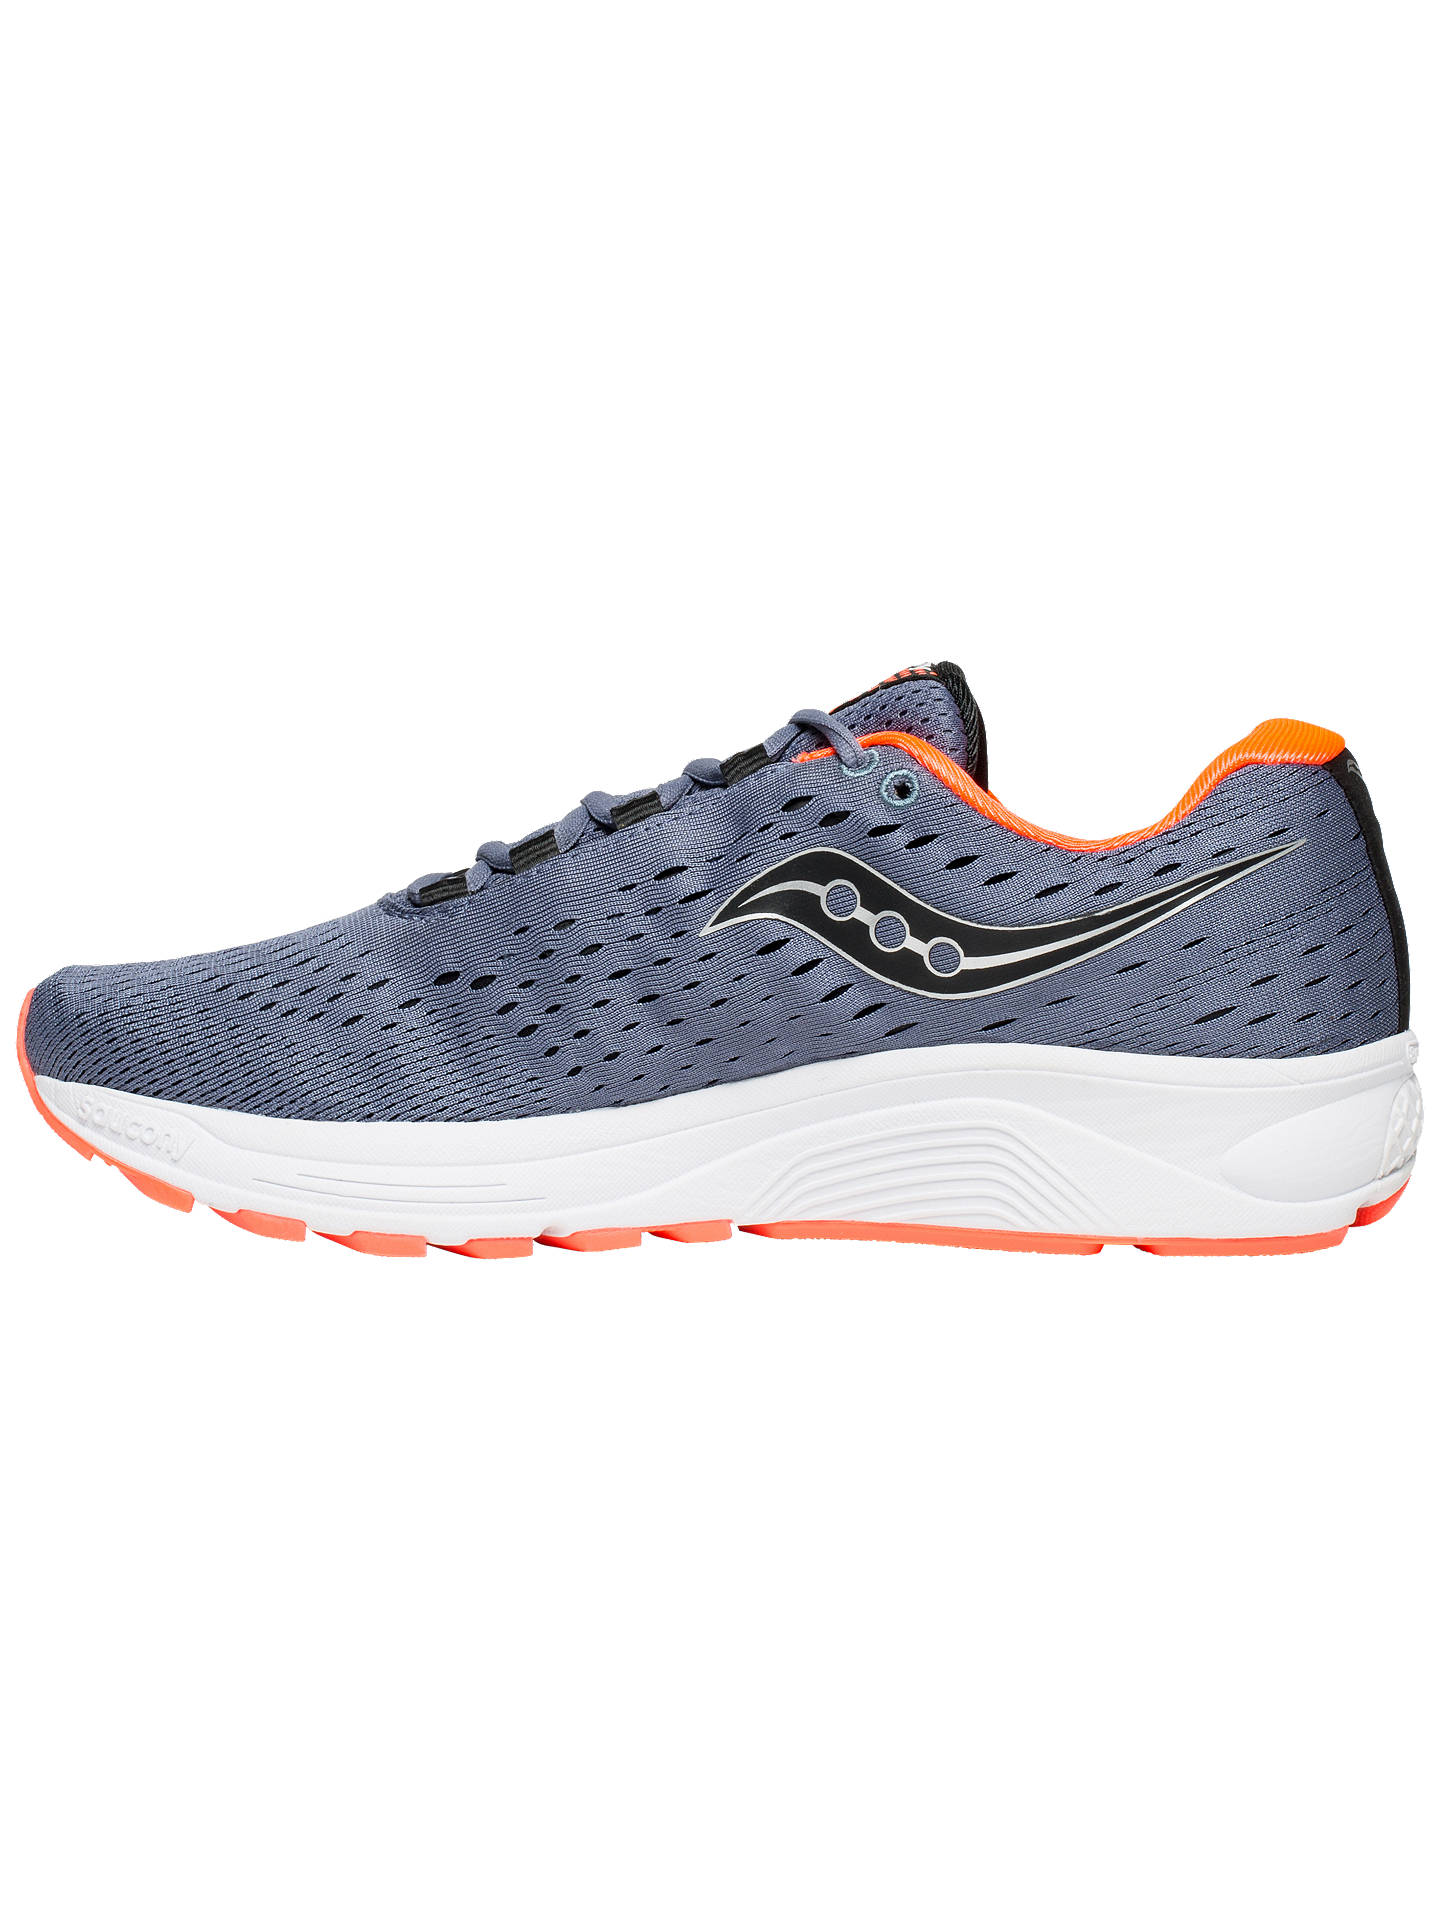 BuySaucony Jazz 20 Men's Running Shoes, Grey/Black/Vizired, 7 Online at johnlewis.com